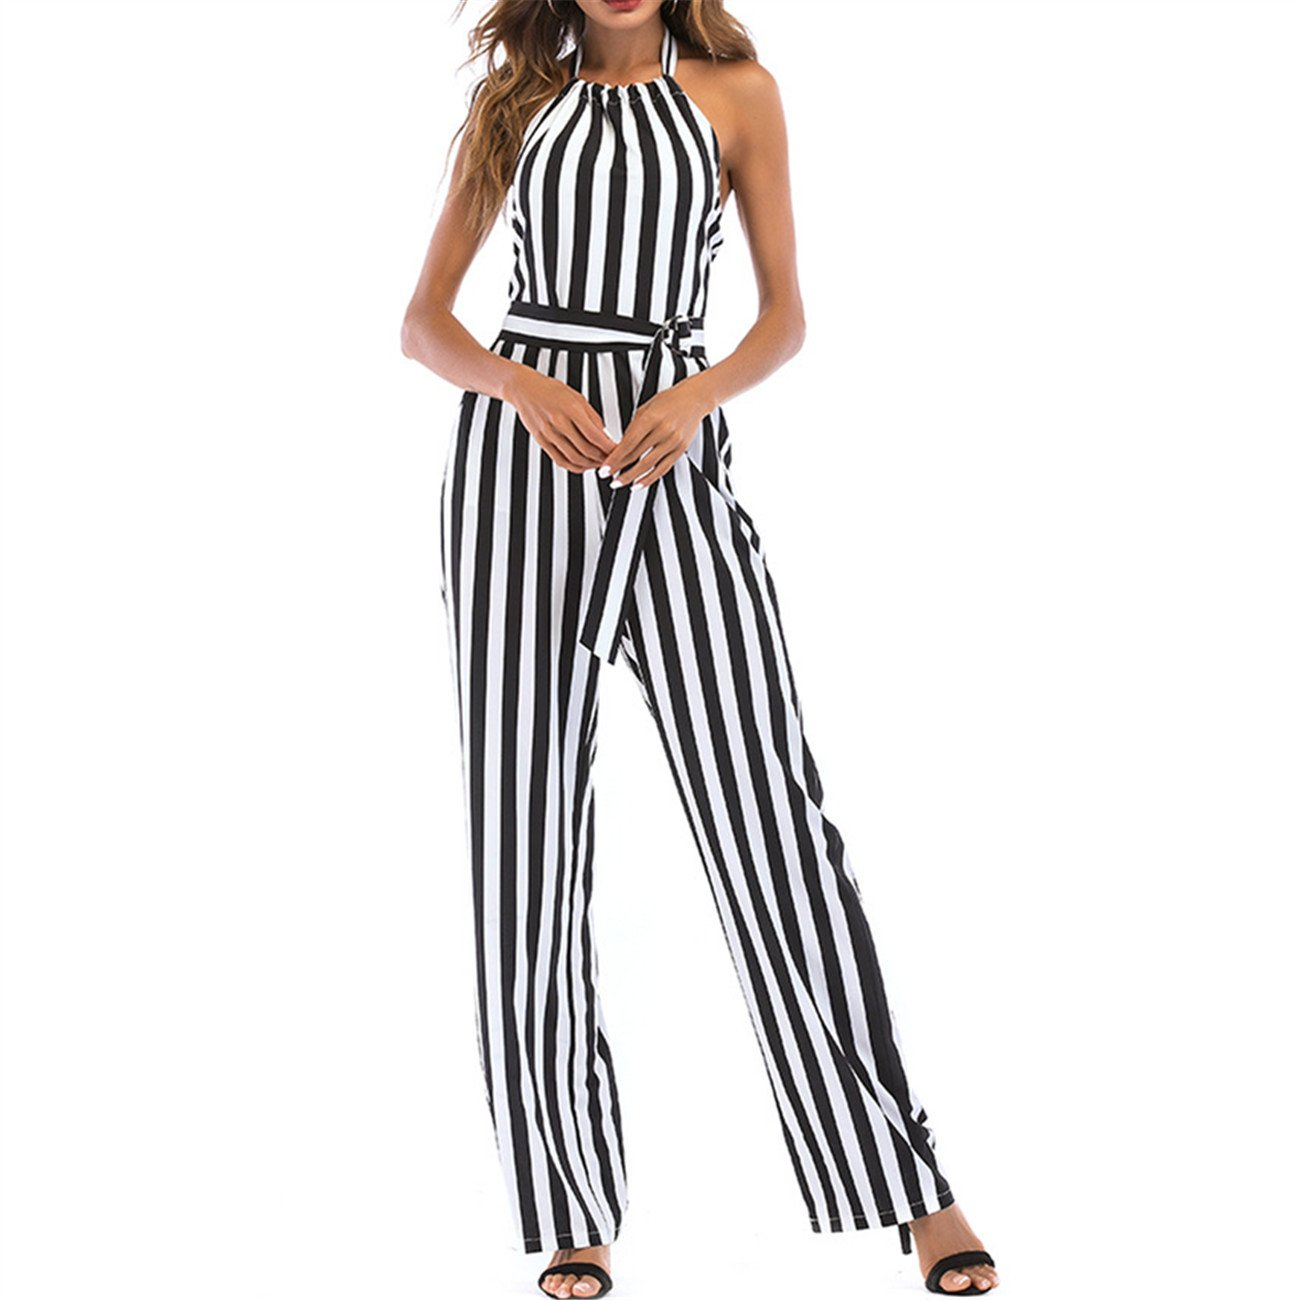 YHBAO Women's Summer Casual Striped Long Pants Jumpsuit Sleeveless Rompers (Samll, Black)